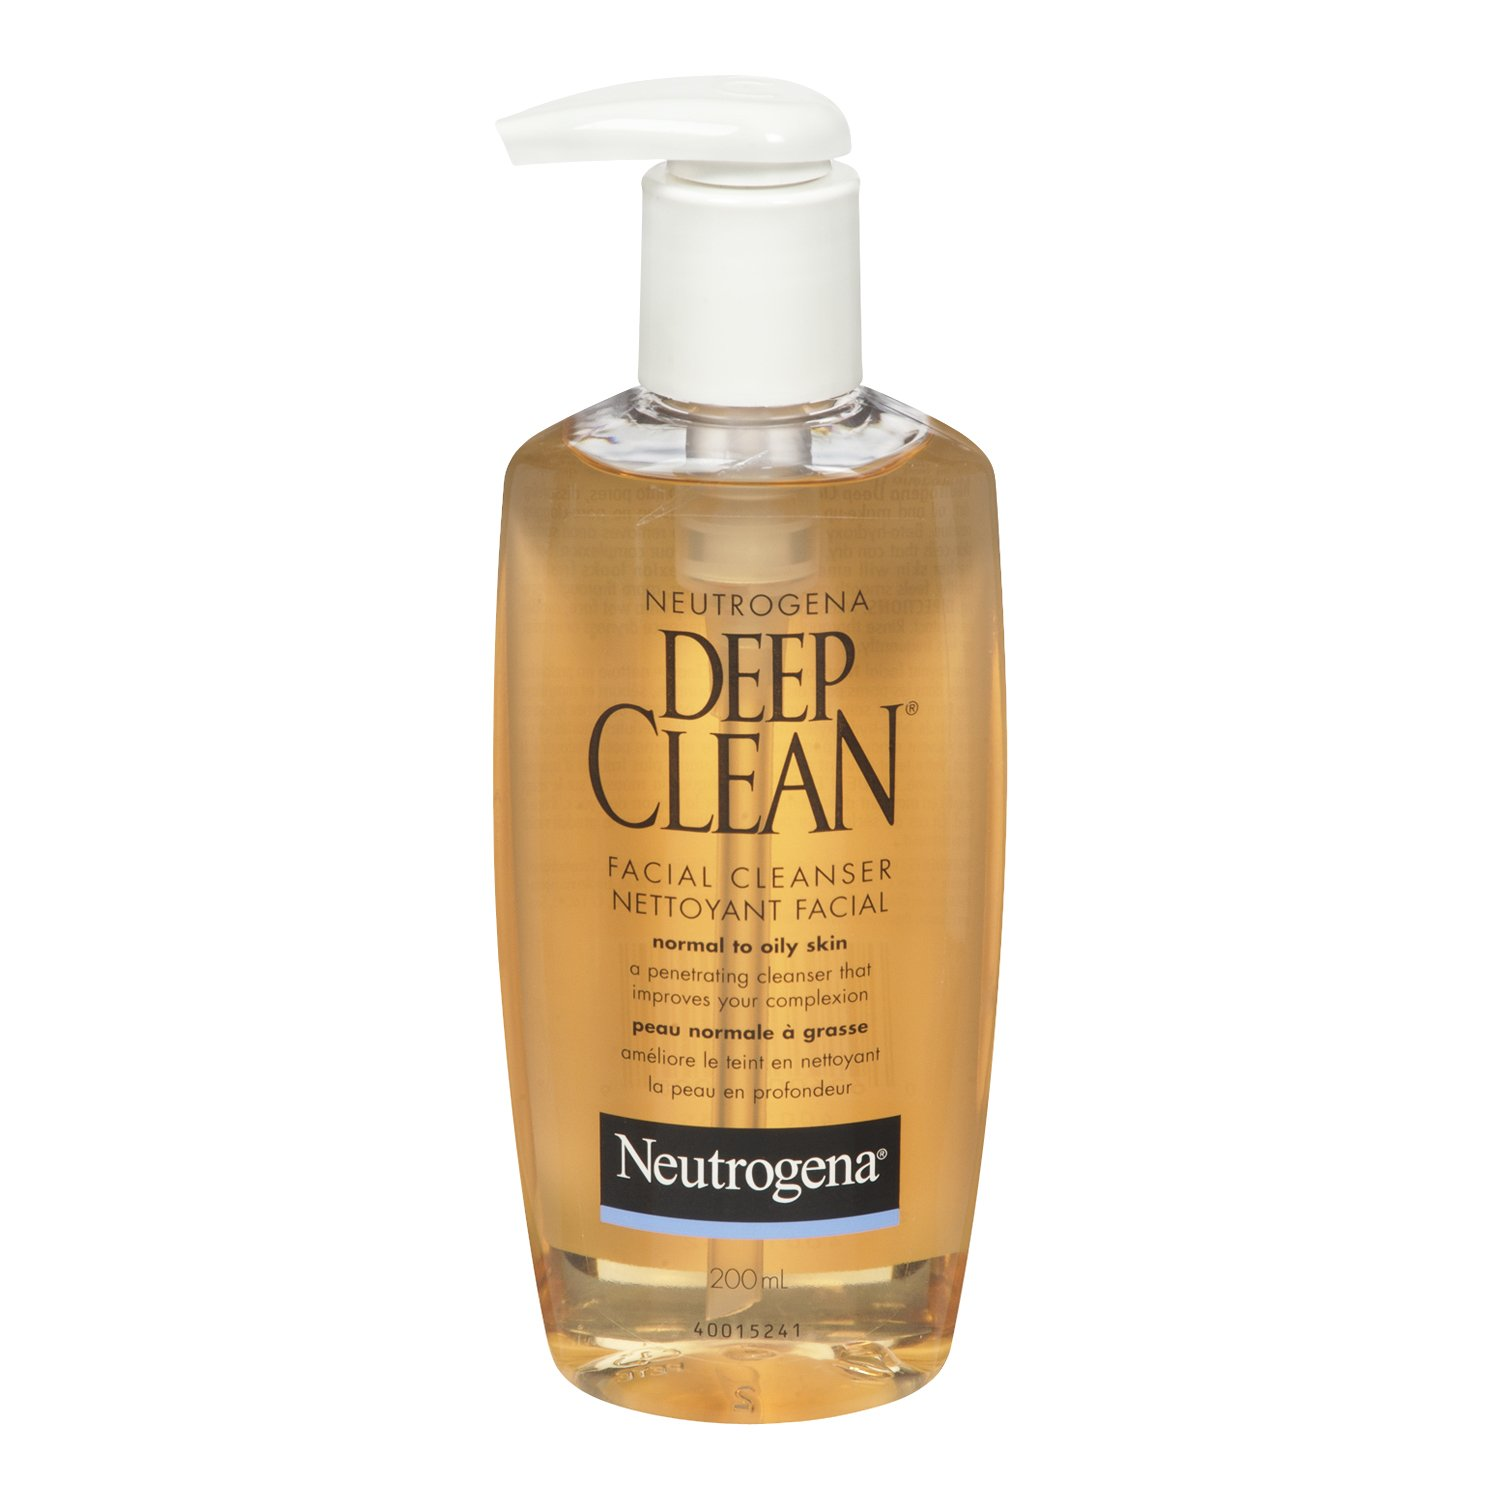 Neutrogena Deep Clean Face Wash, Oil Free Facial Cleanser for Oily Skin, 200 mL